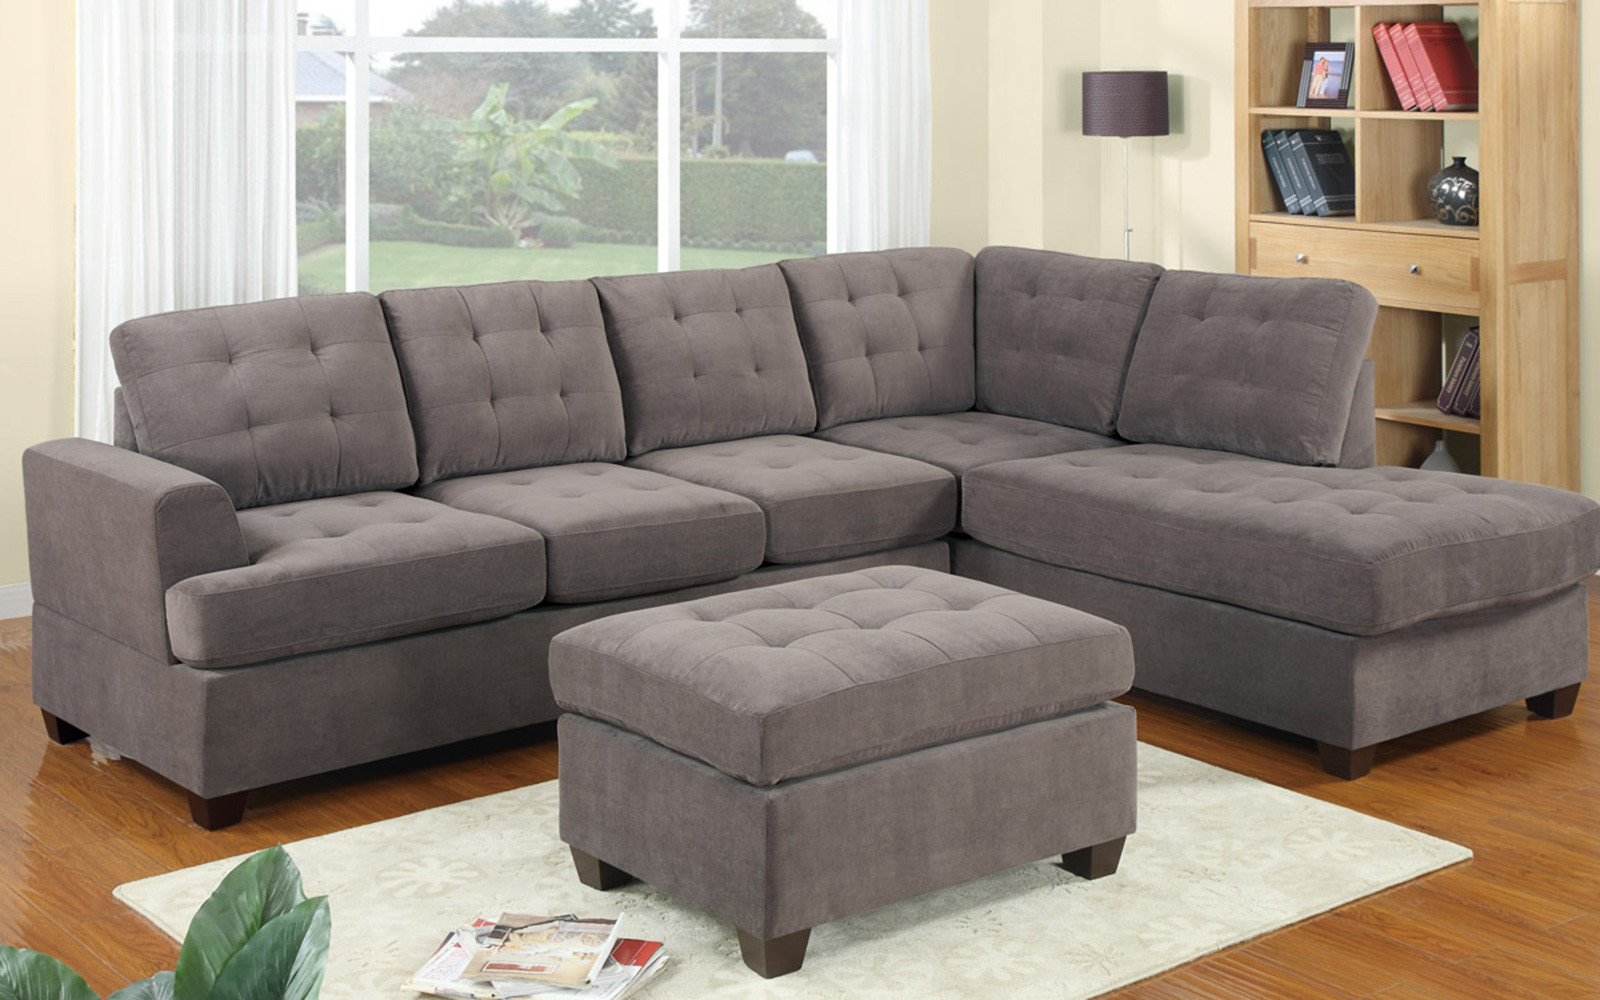 Delicieux 2 Piece Modern Reversible Grey Tufted Microfiber Sectional Sofa With Ottoman